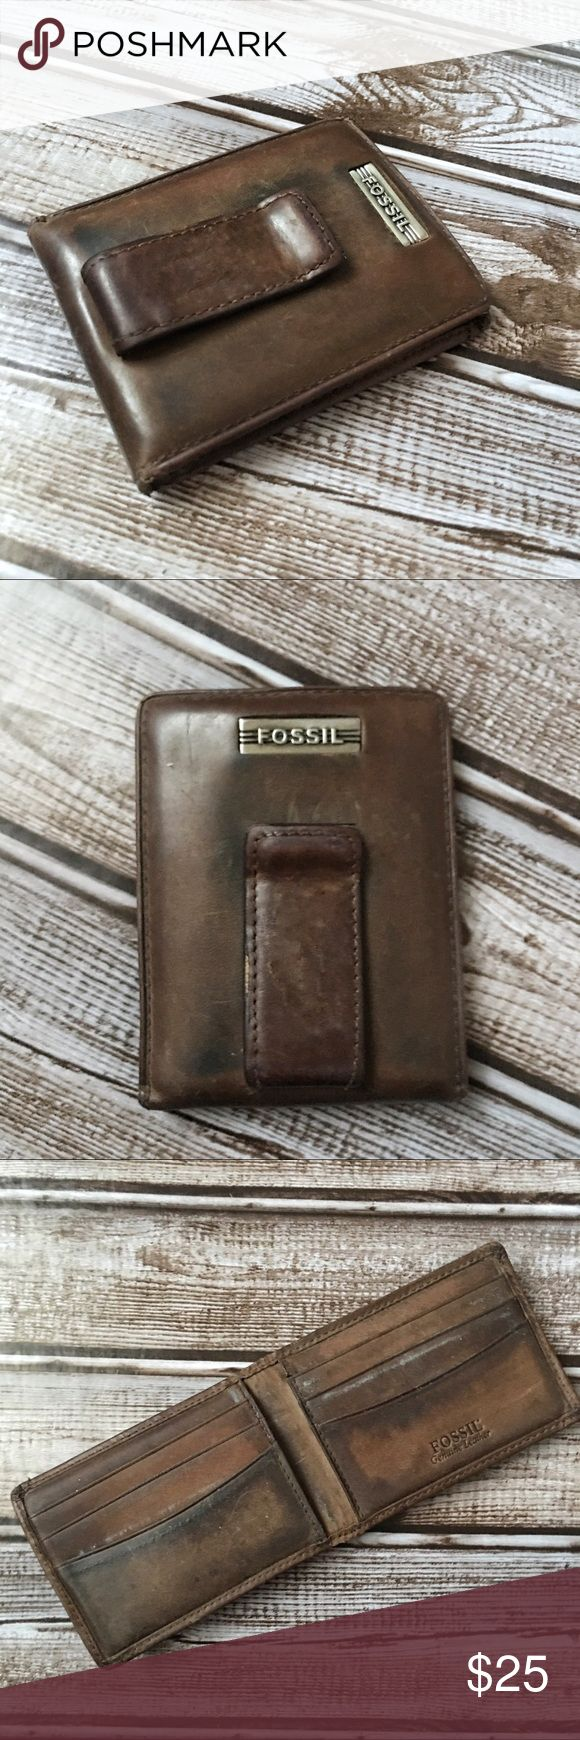 Vintage Fossil Men's Wallet Money Clip Vintage Fossil Men's Wallet Money Clip. Shows signs of wear consistent with age. Fossil Bags Wallets